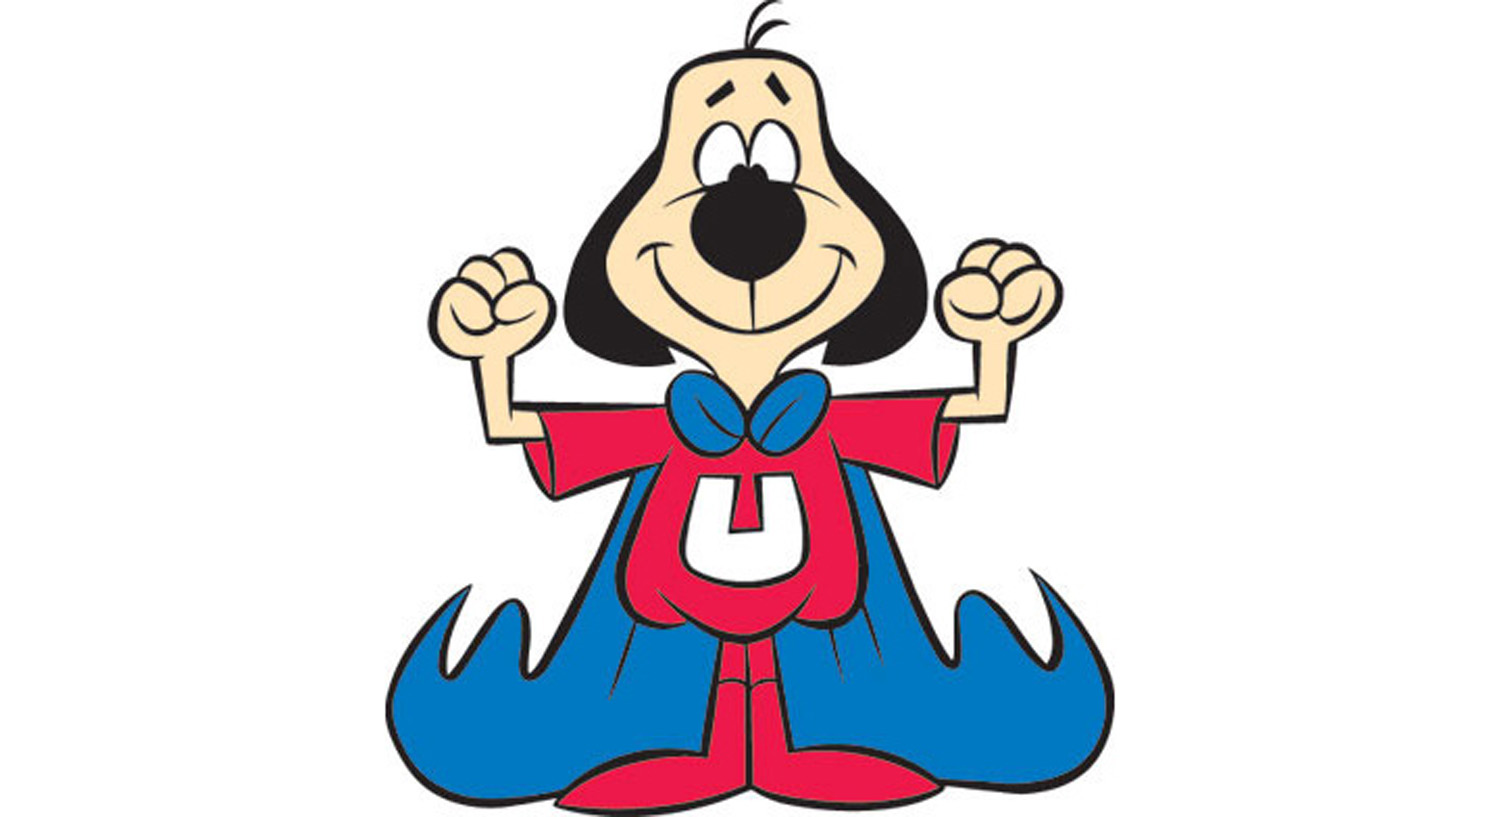 Who Was the Voice of Underdog?.